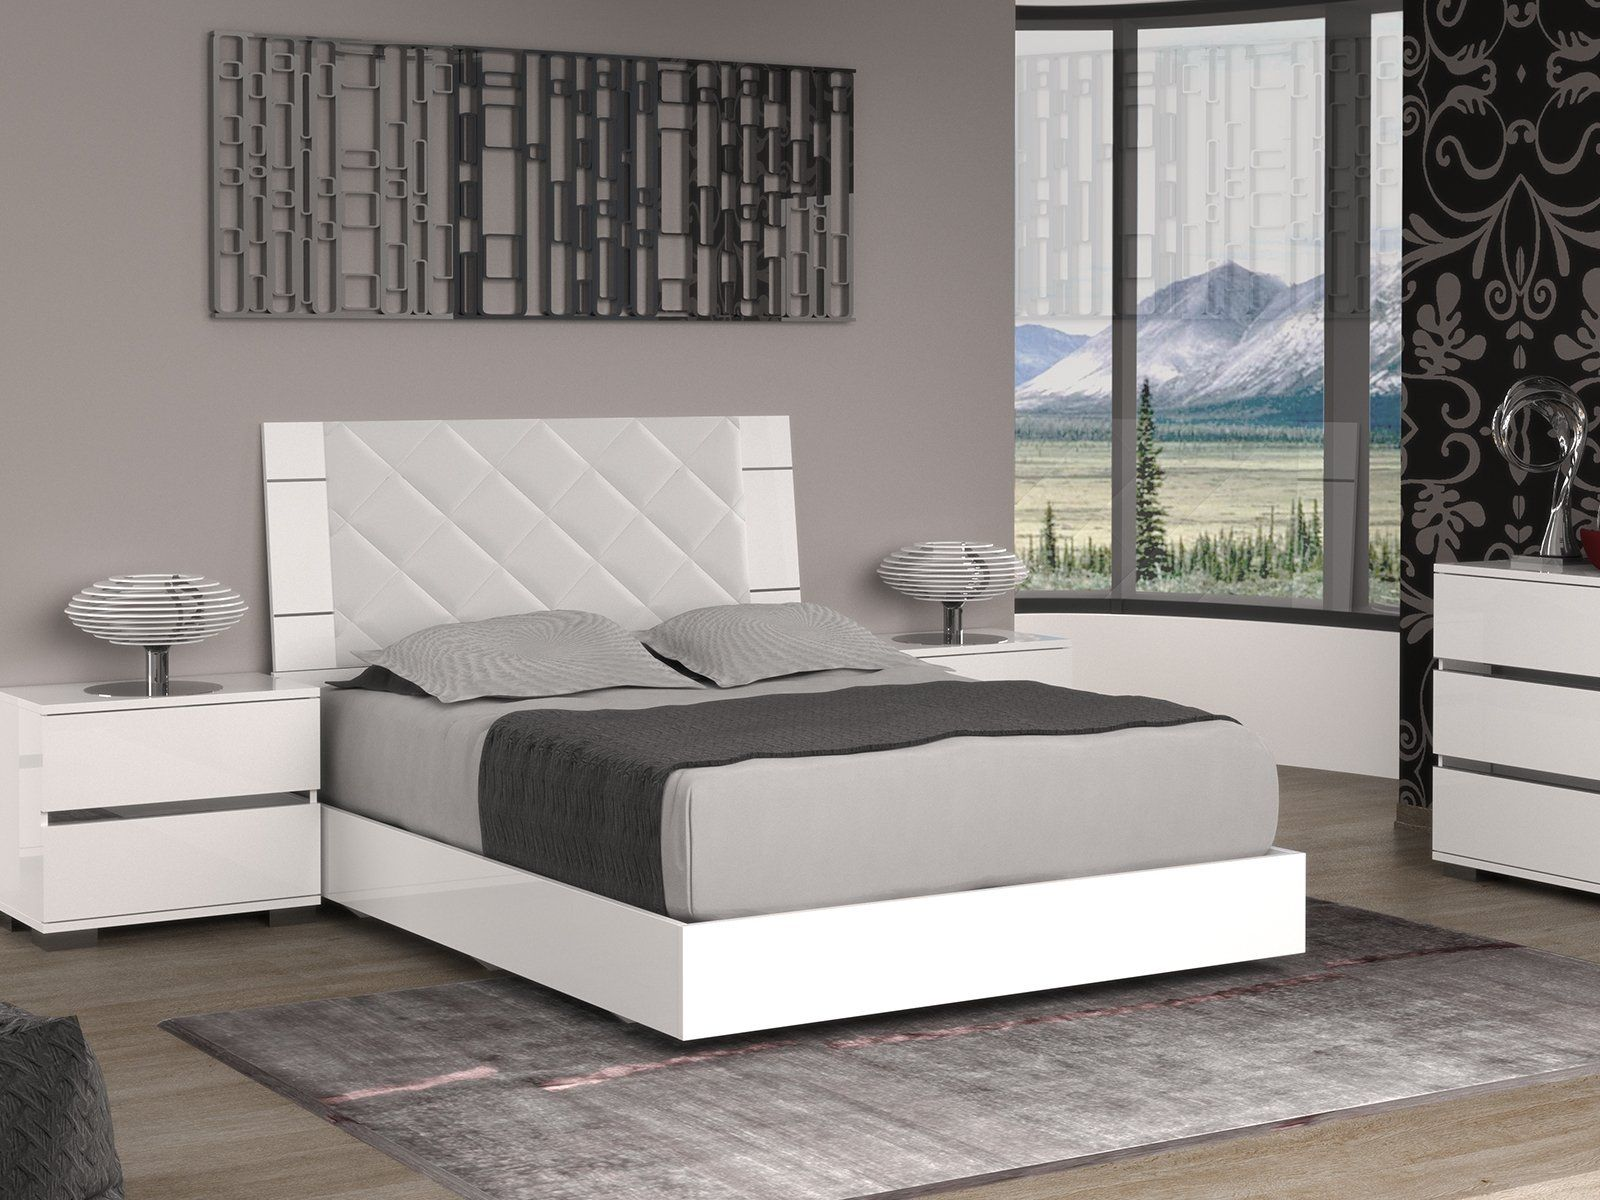 32+ High gloss lacquer bedroom furniture information